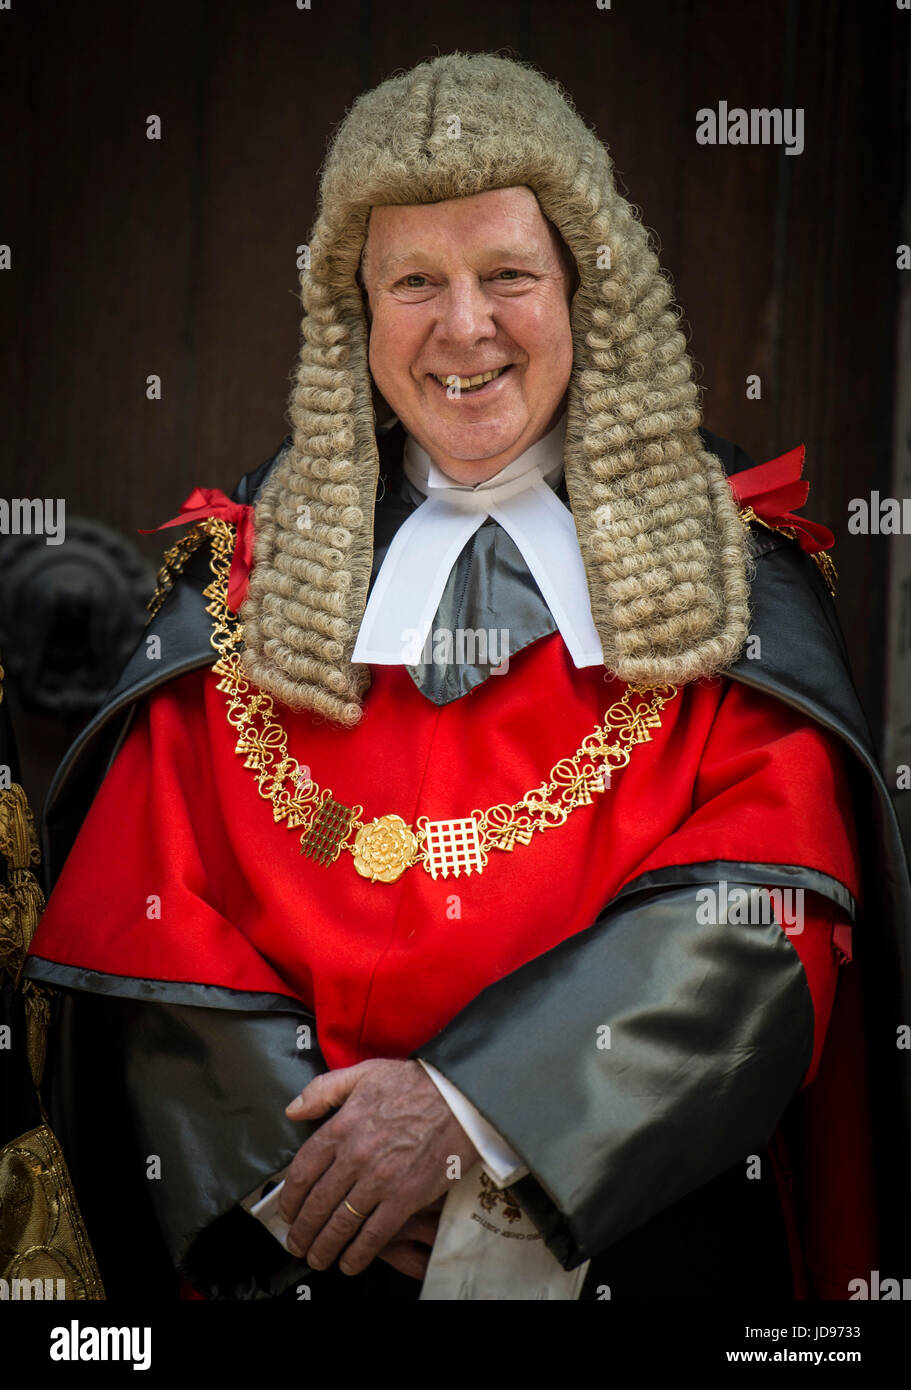 The Lord Chief Justice Lord Thomas of Cwmgiedd arrives at the Lord Chancellor David Liddington's swearing in ceremony Stock Photo